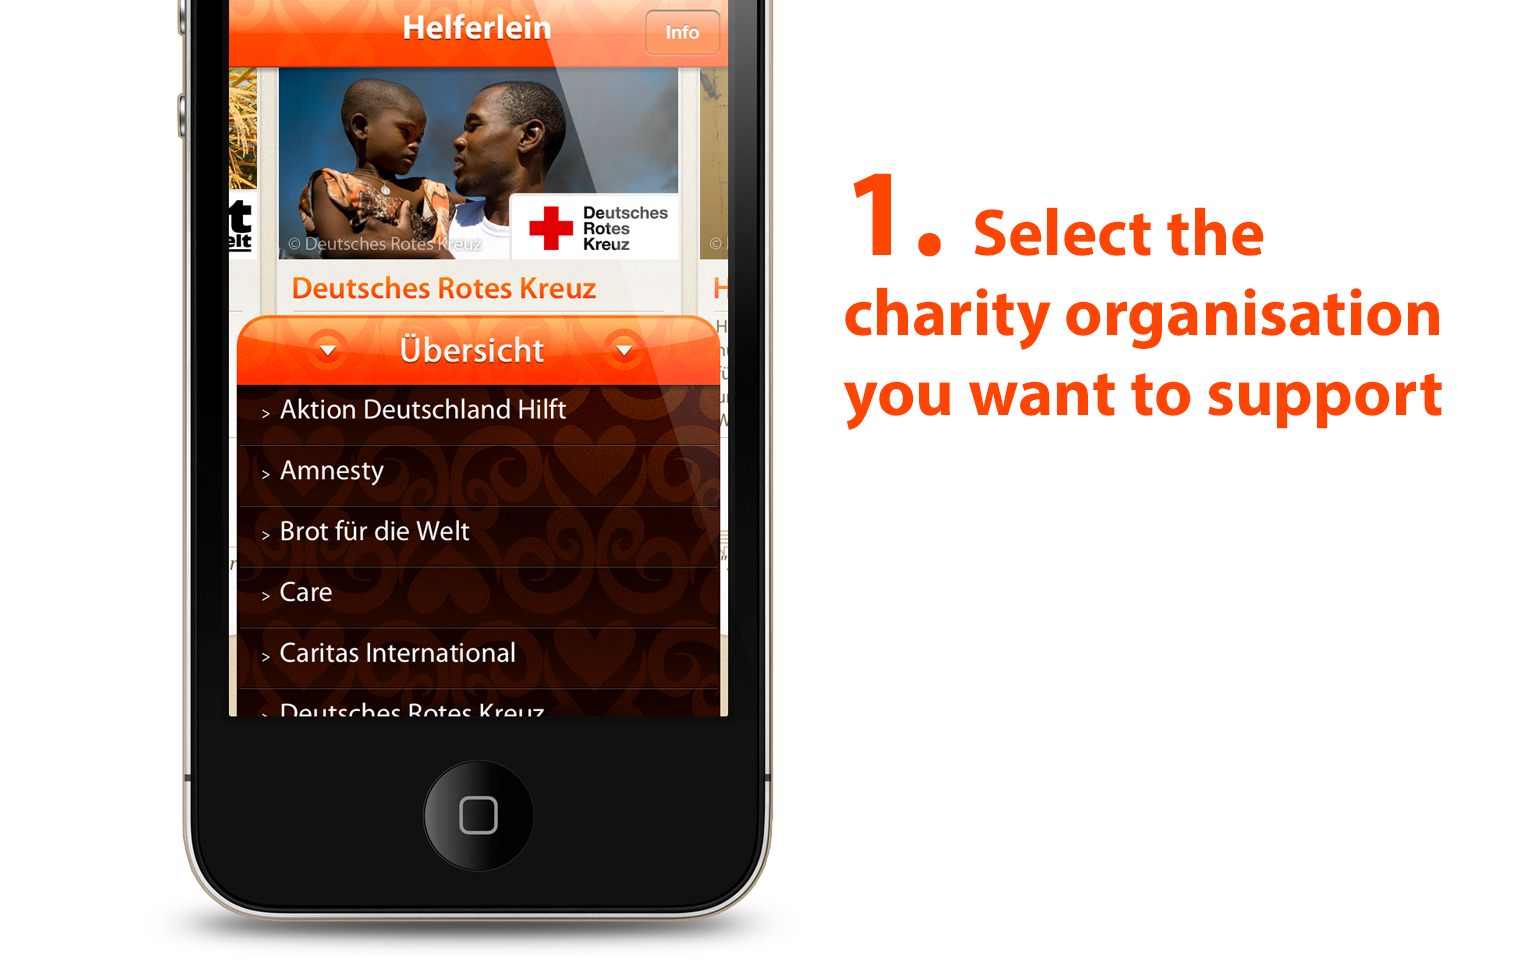 Helferlein charity iPhone app - slide 2